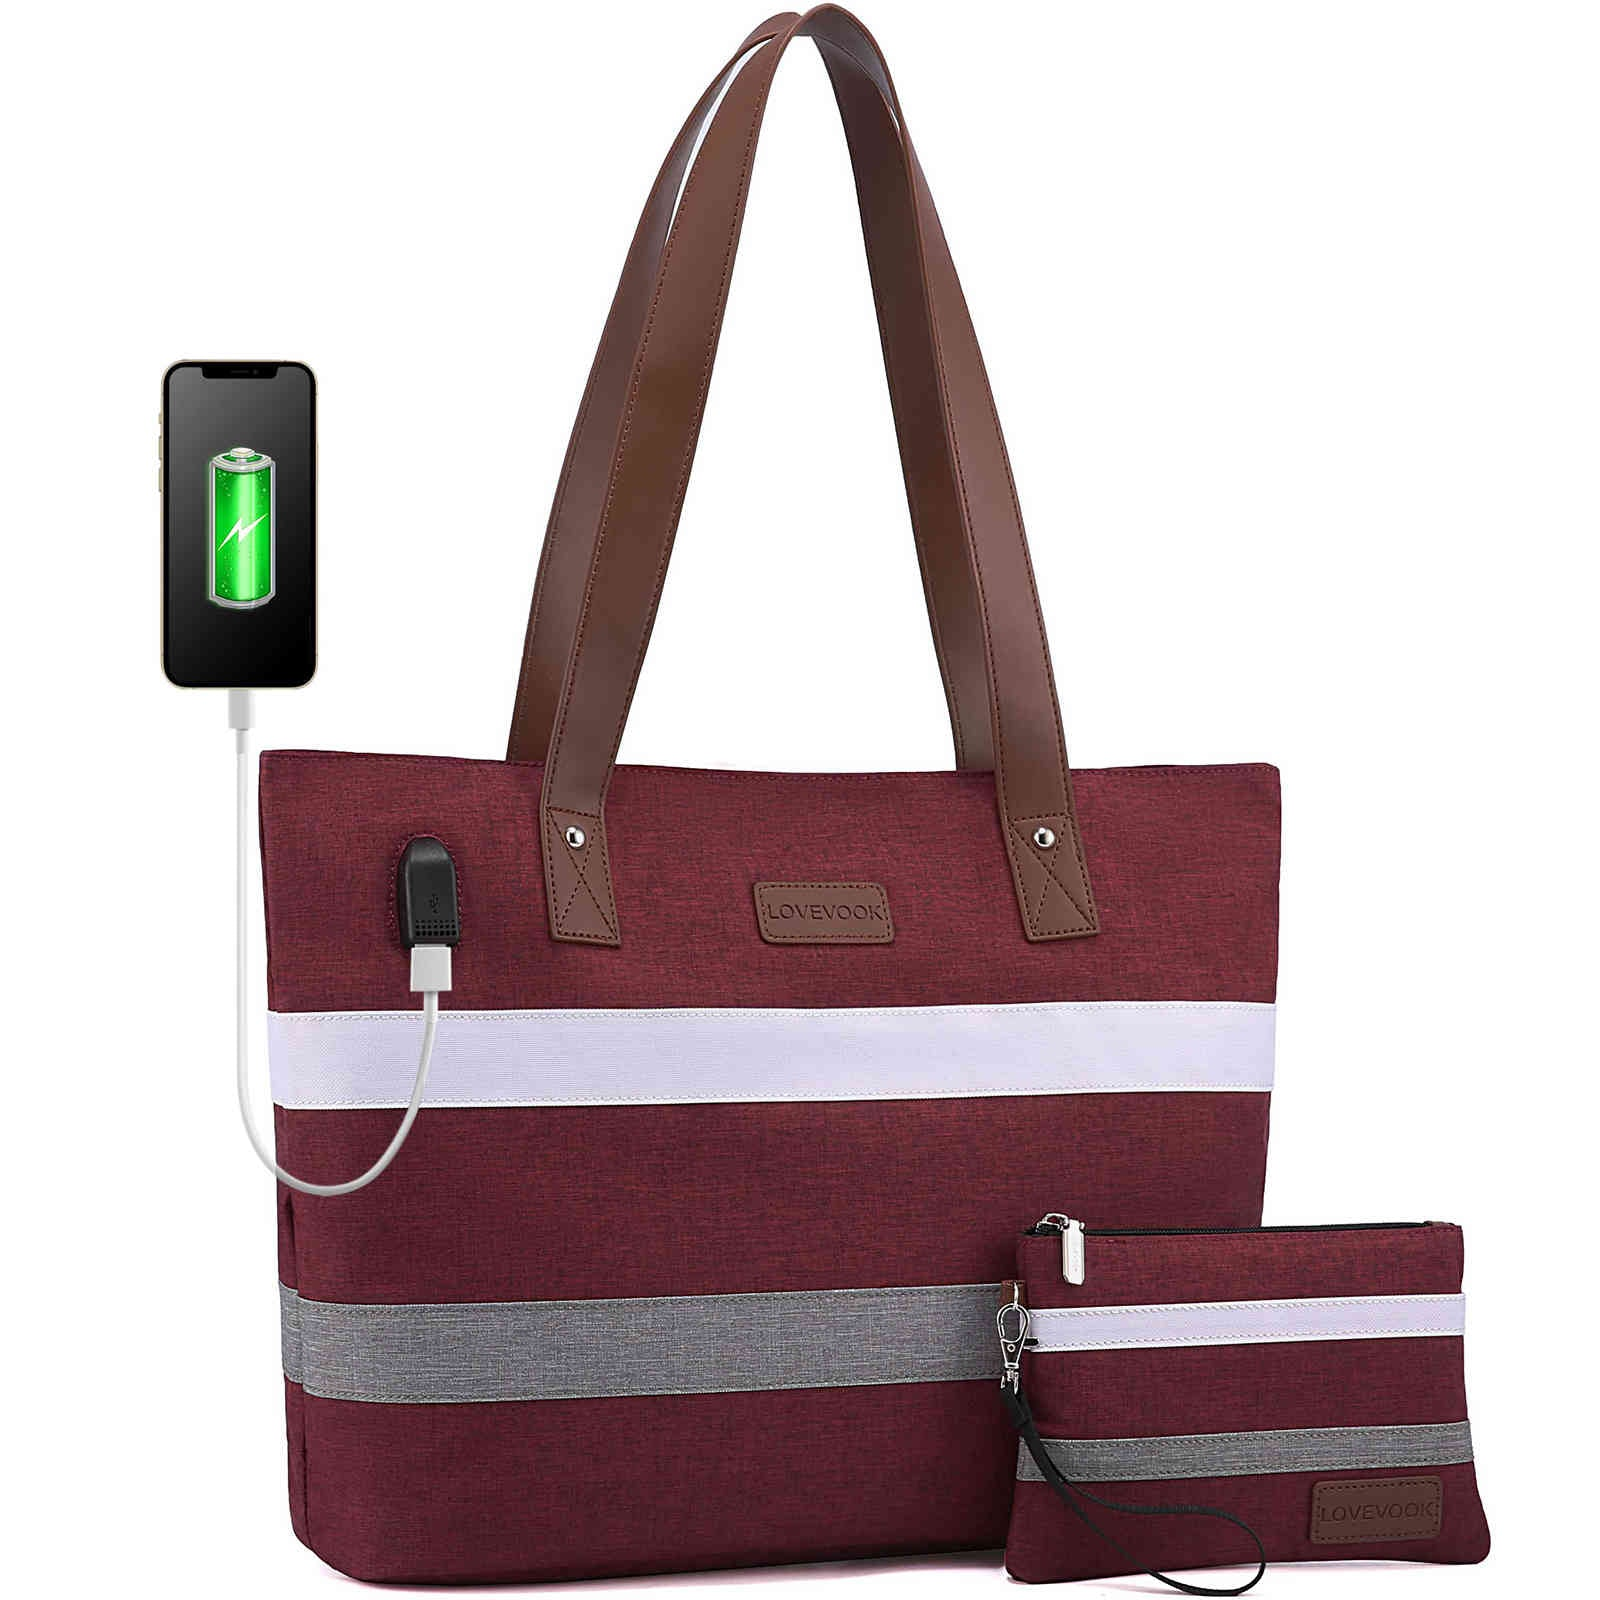 LOVEVOOK Women Laptop Bags for Office Work